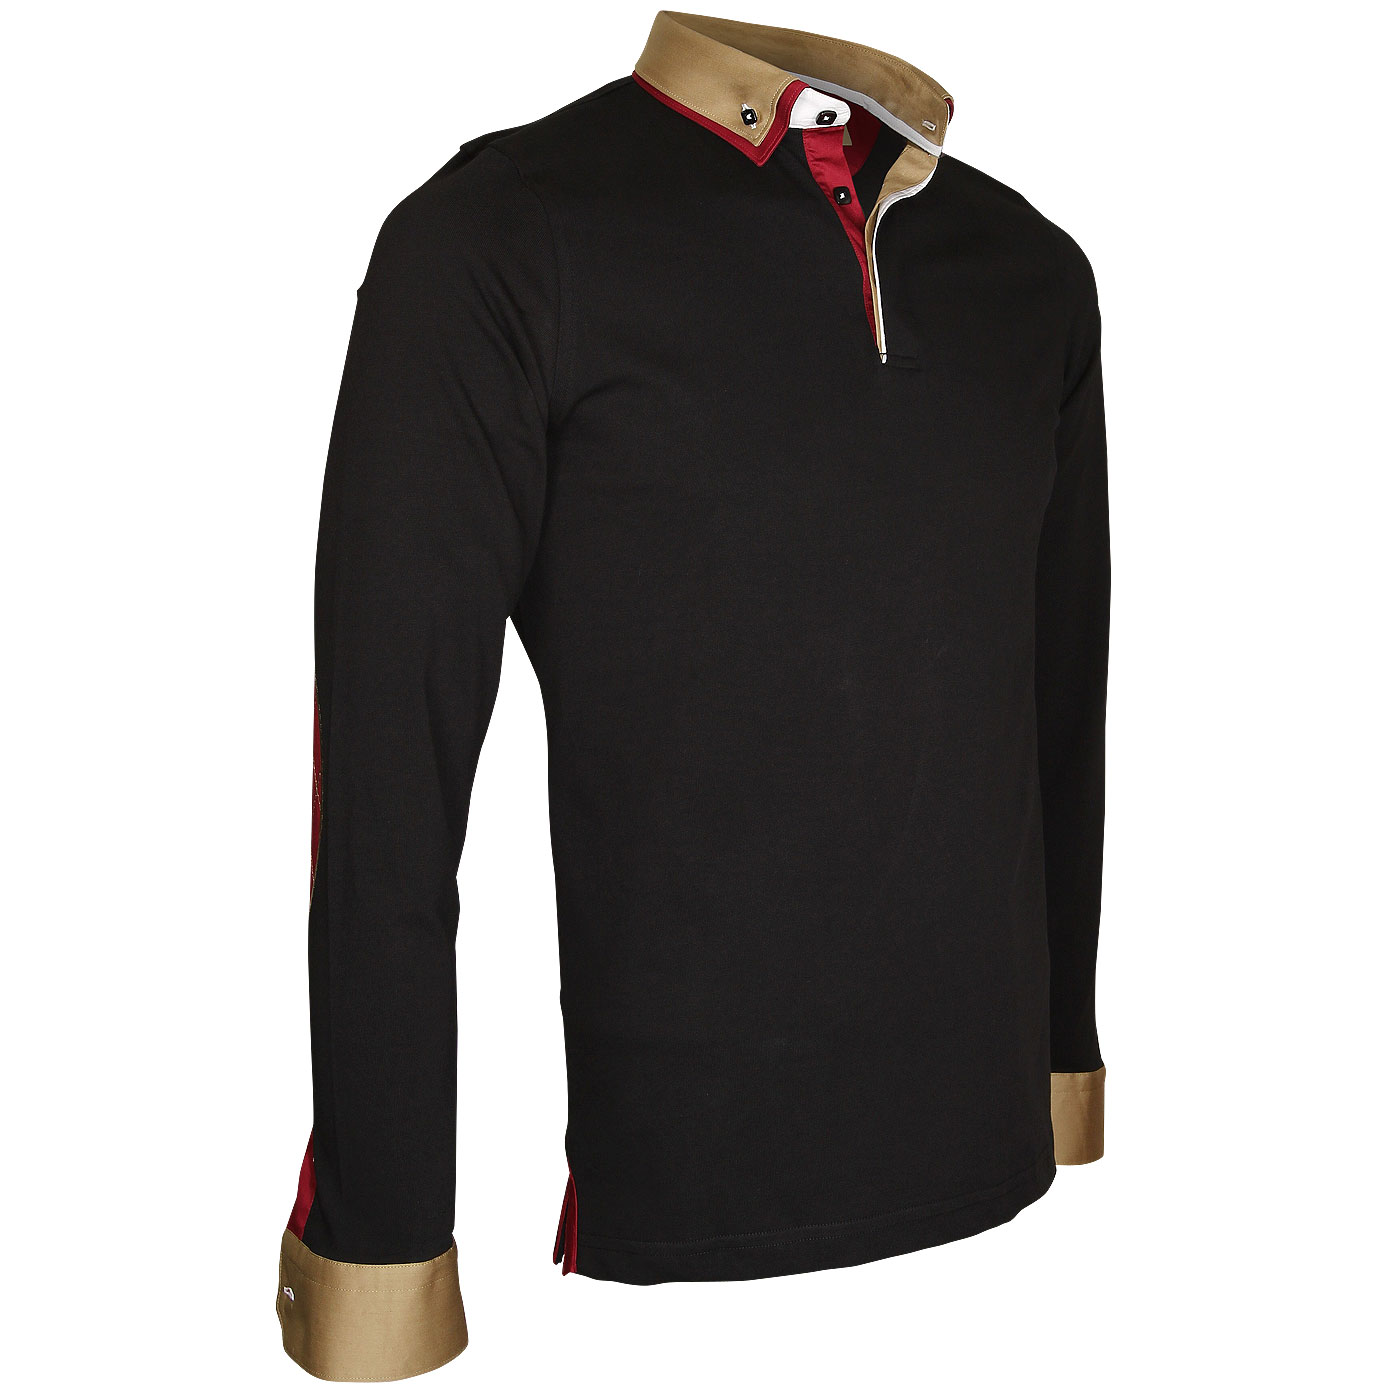 Double collar jersey polo